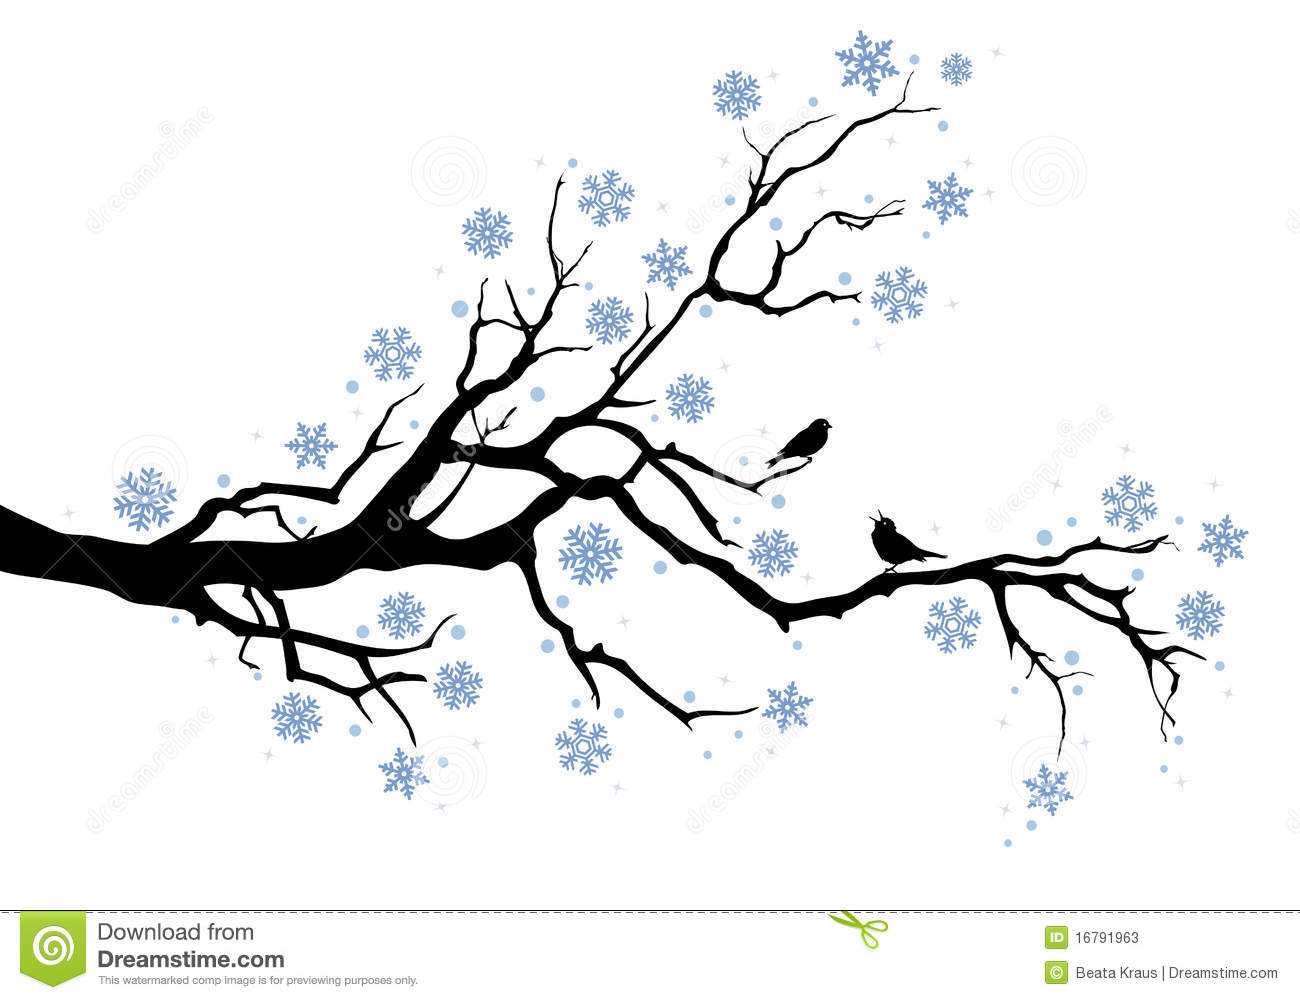 Winter tree with snowflakes and birds, background.